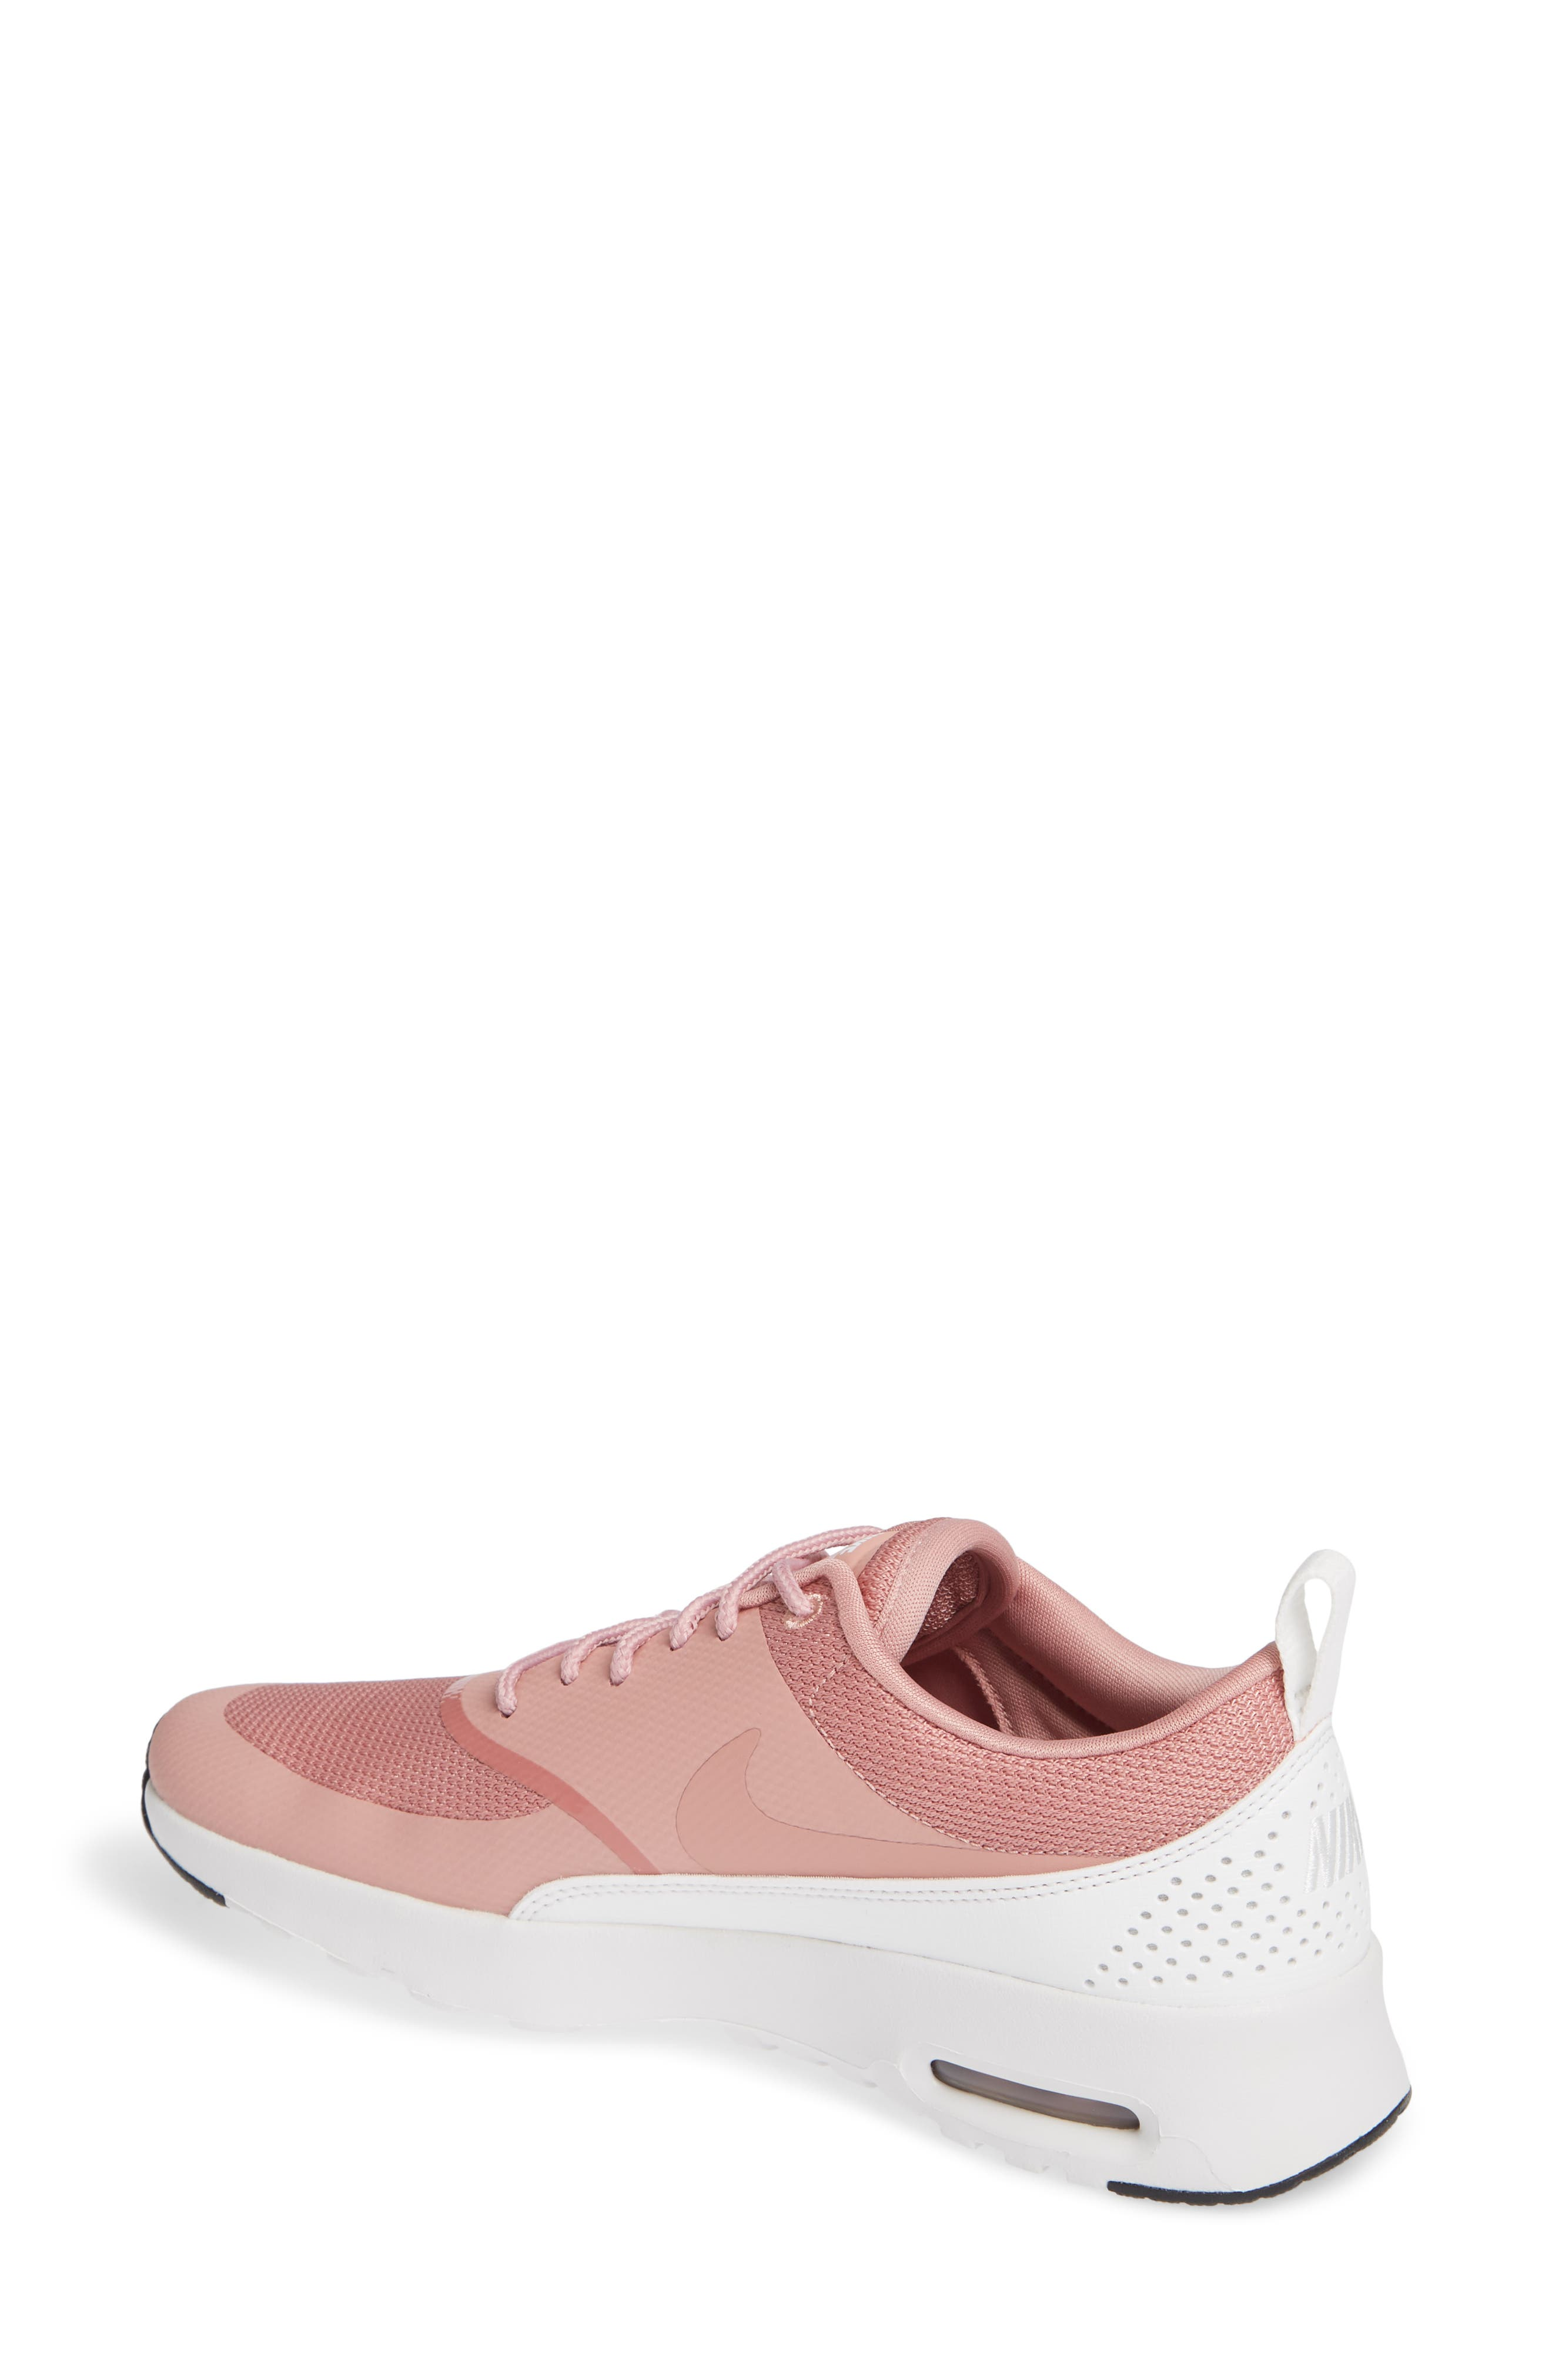 Air Max Thea Sneaker,                             Alternate thumbnail 2, color,                             RUST PINK/ WHITE/ BLACK